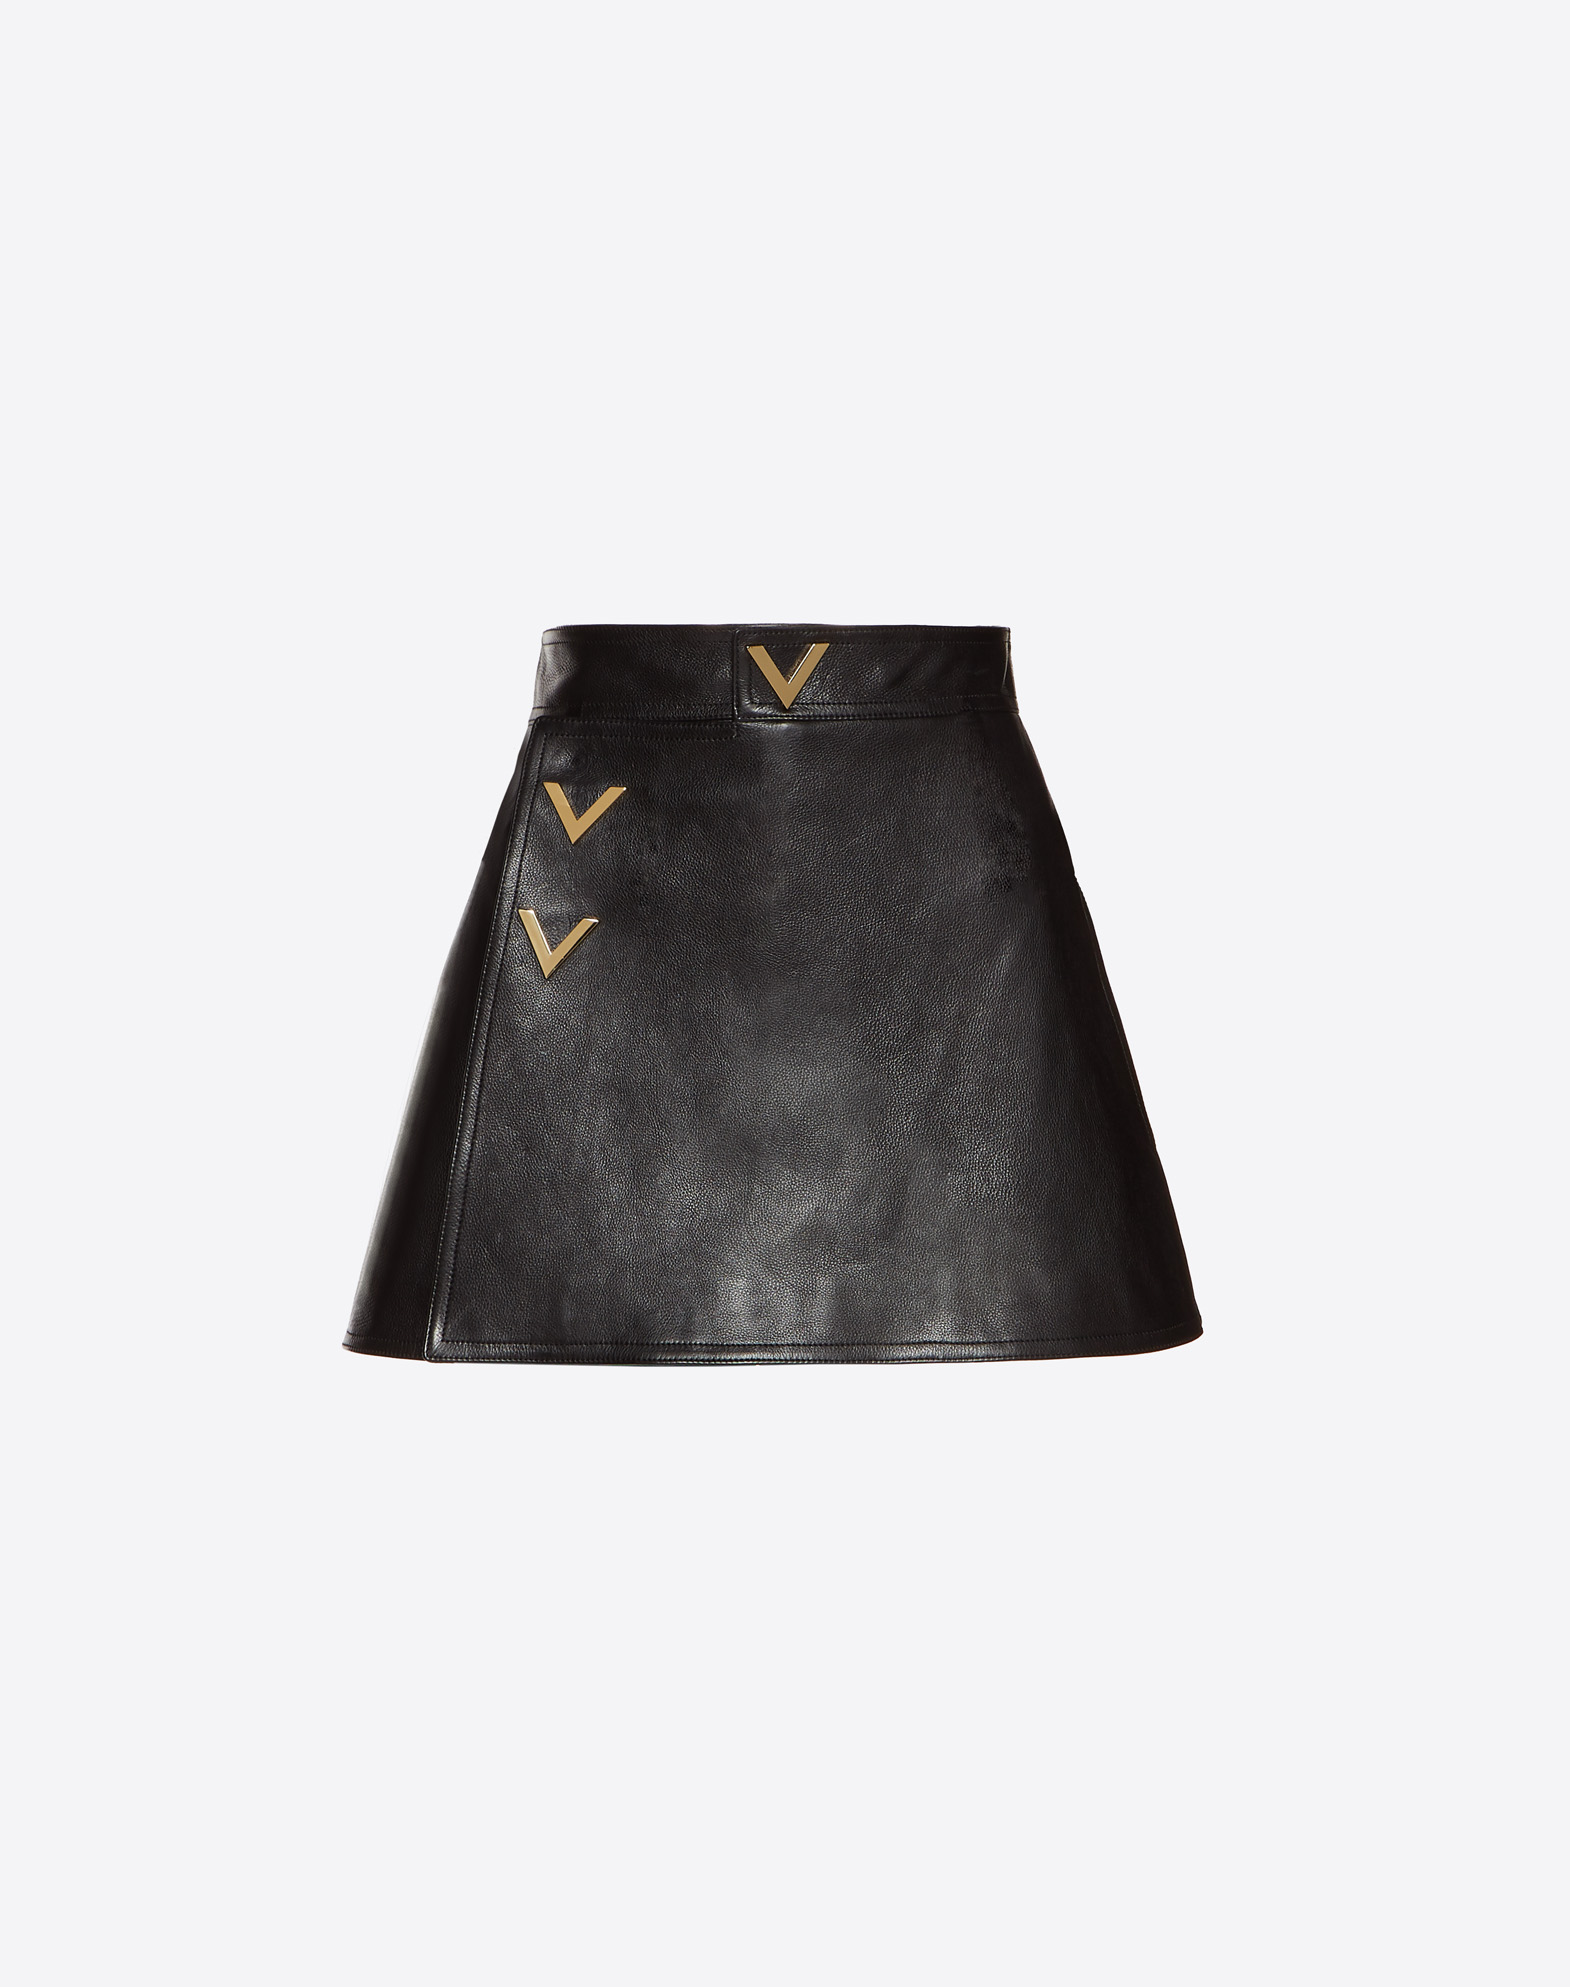 Heavy Calf Mini Skort with Gold V Details